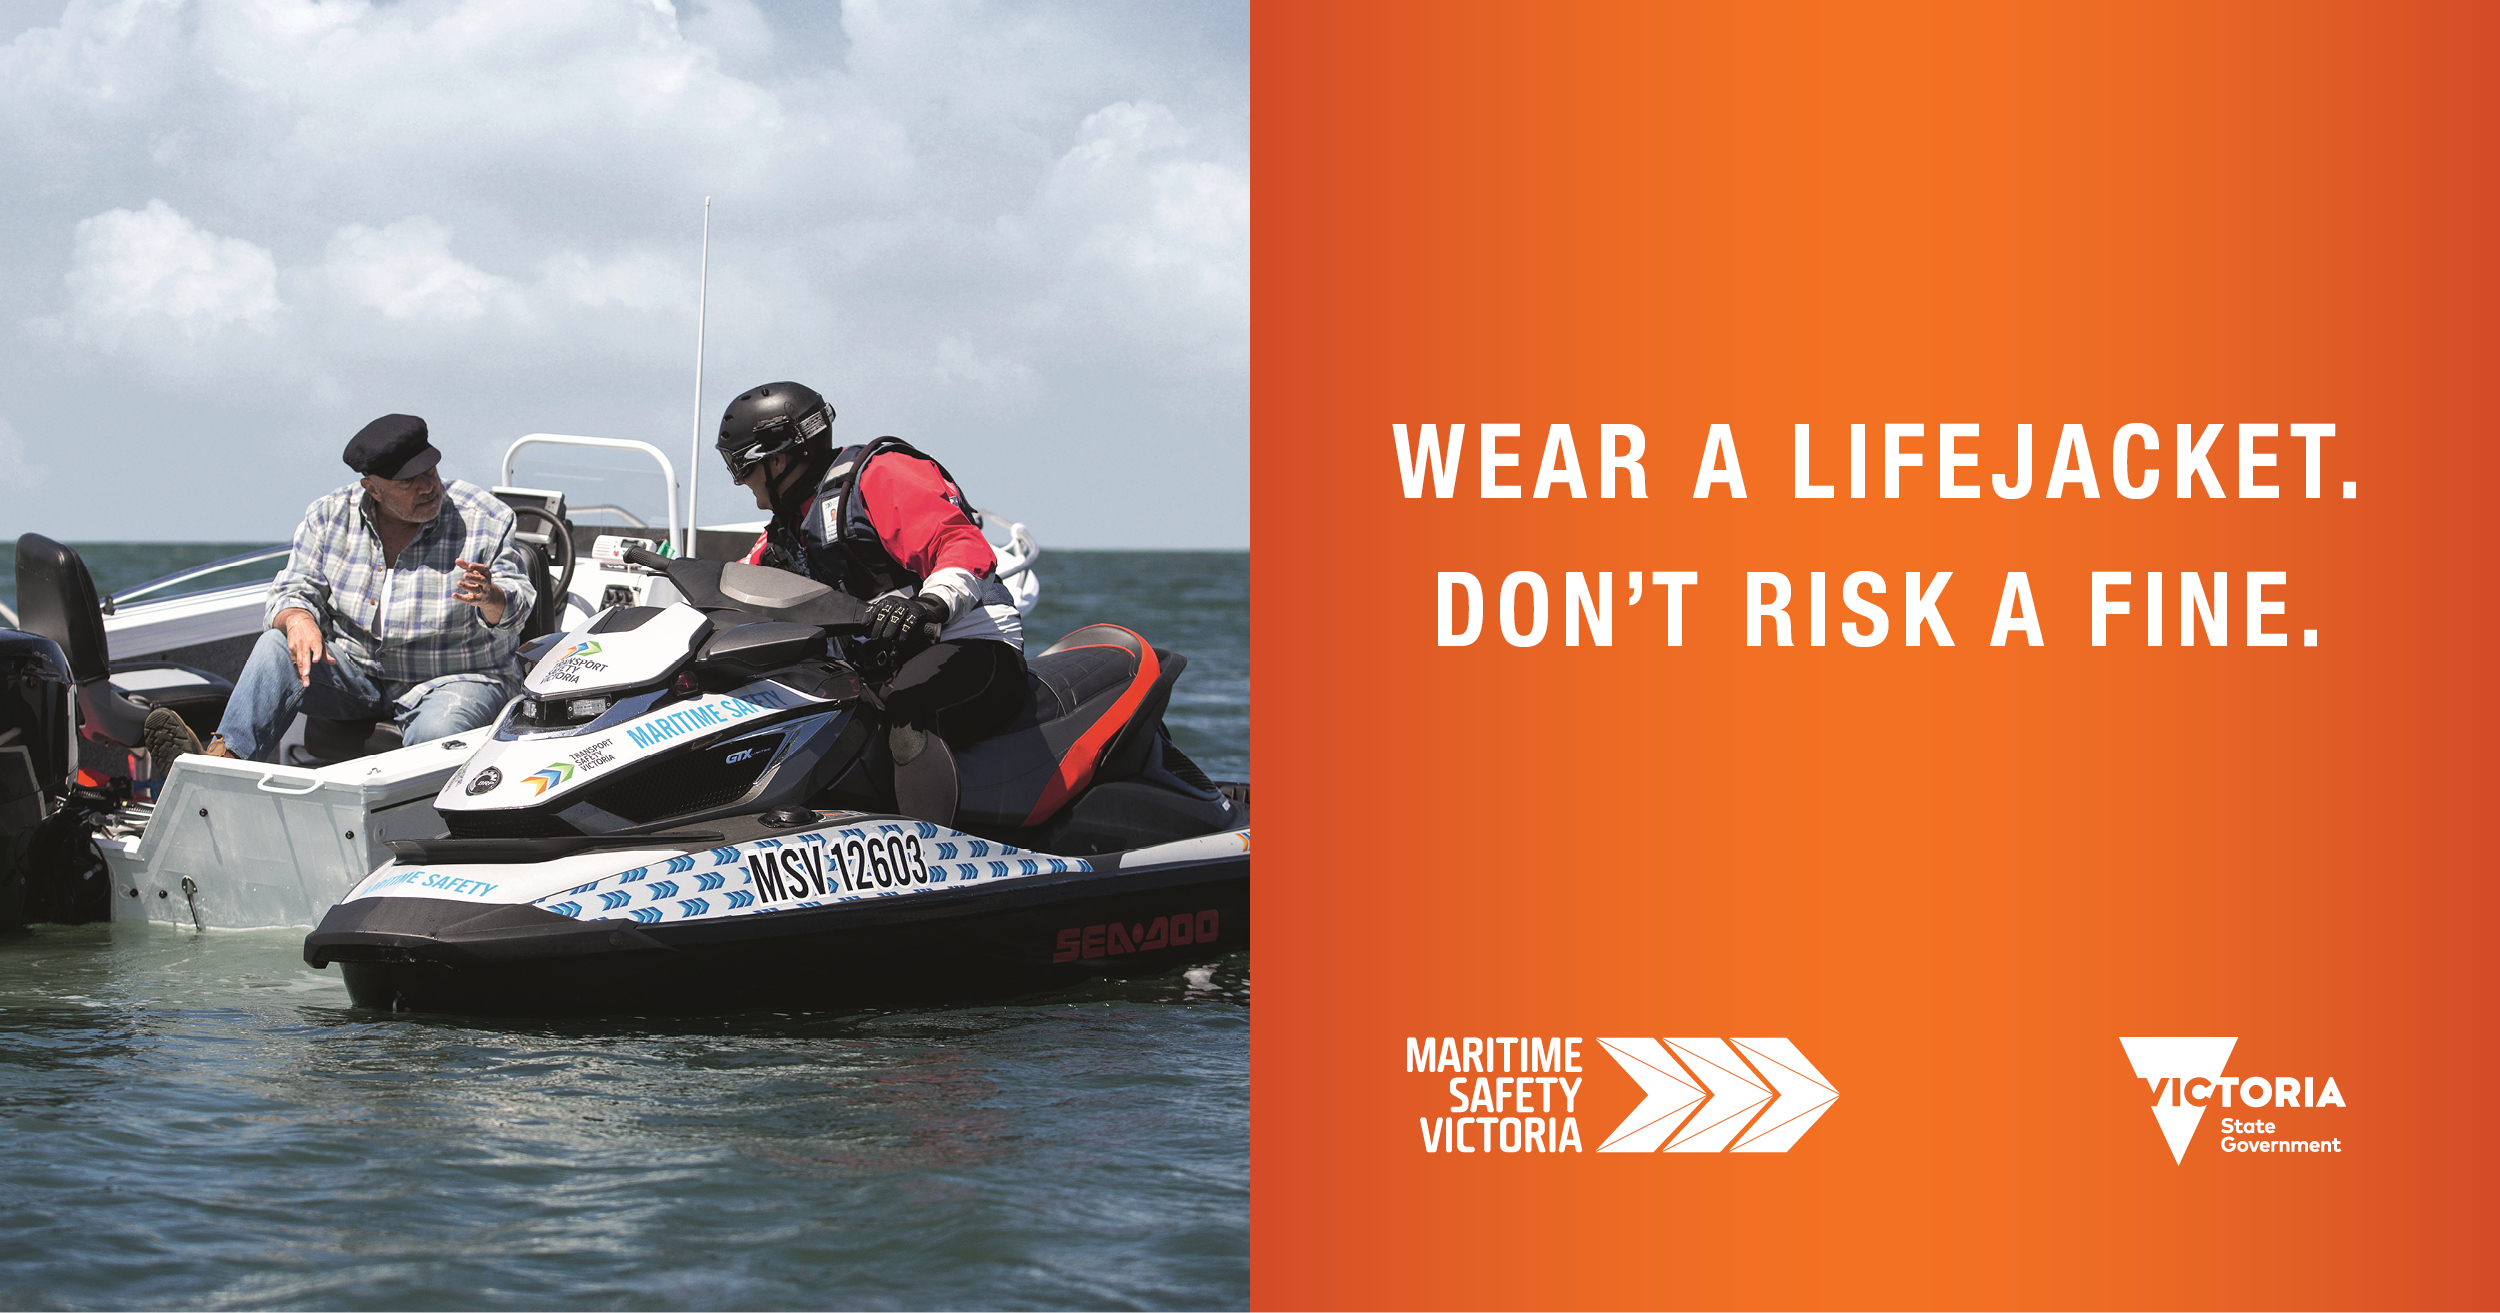 Wear a lifejacket, don't risk a fine